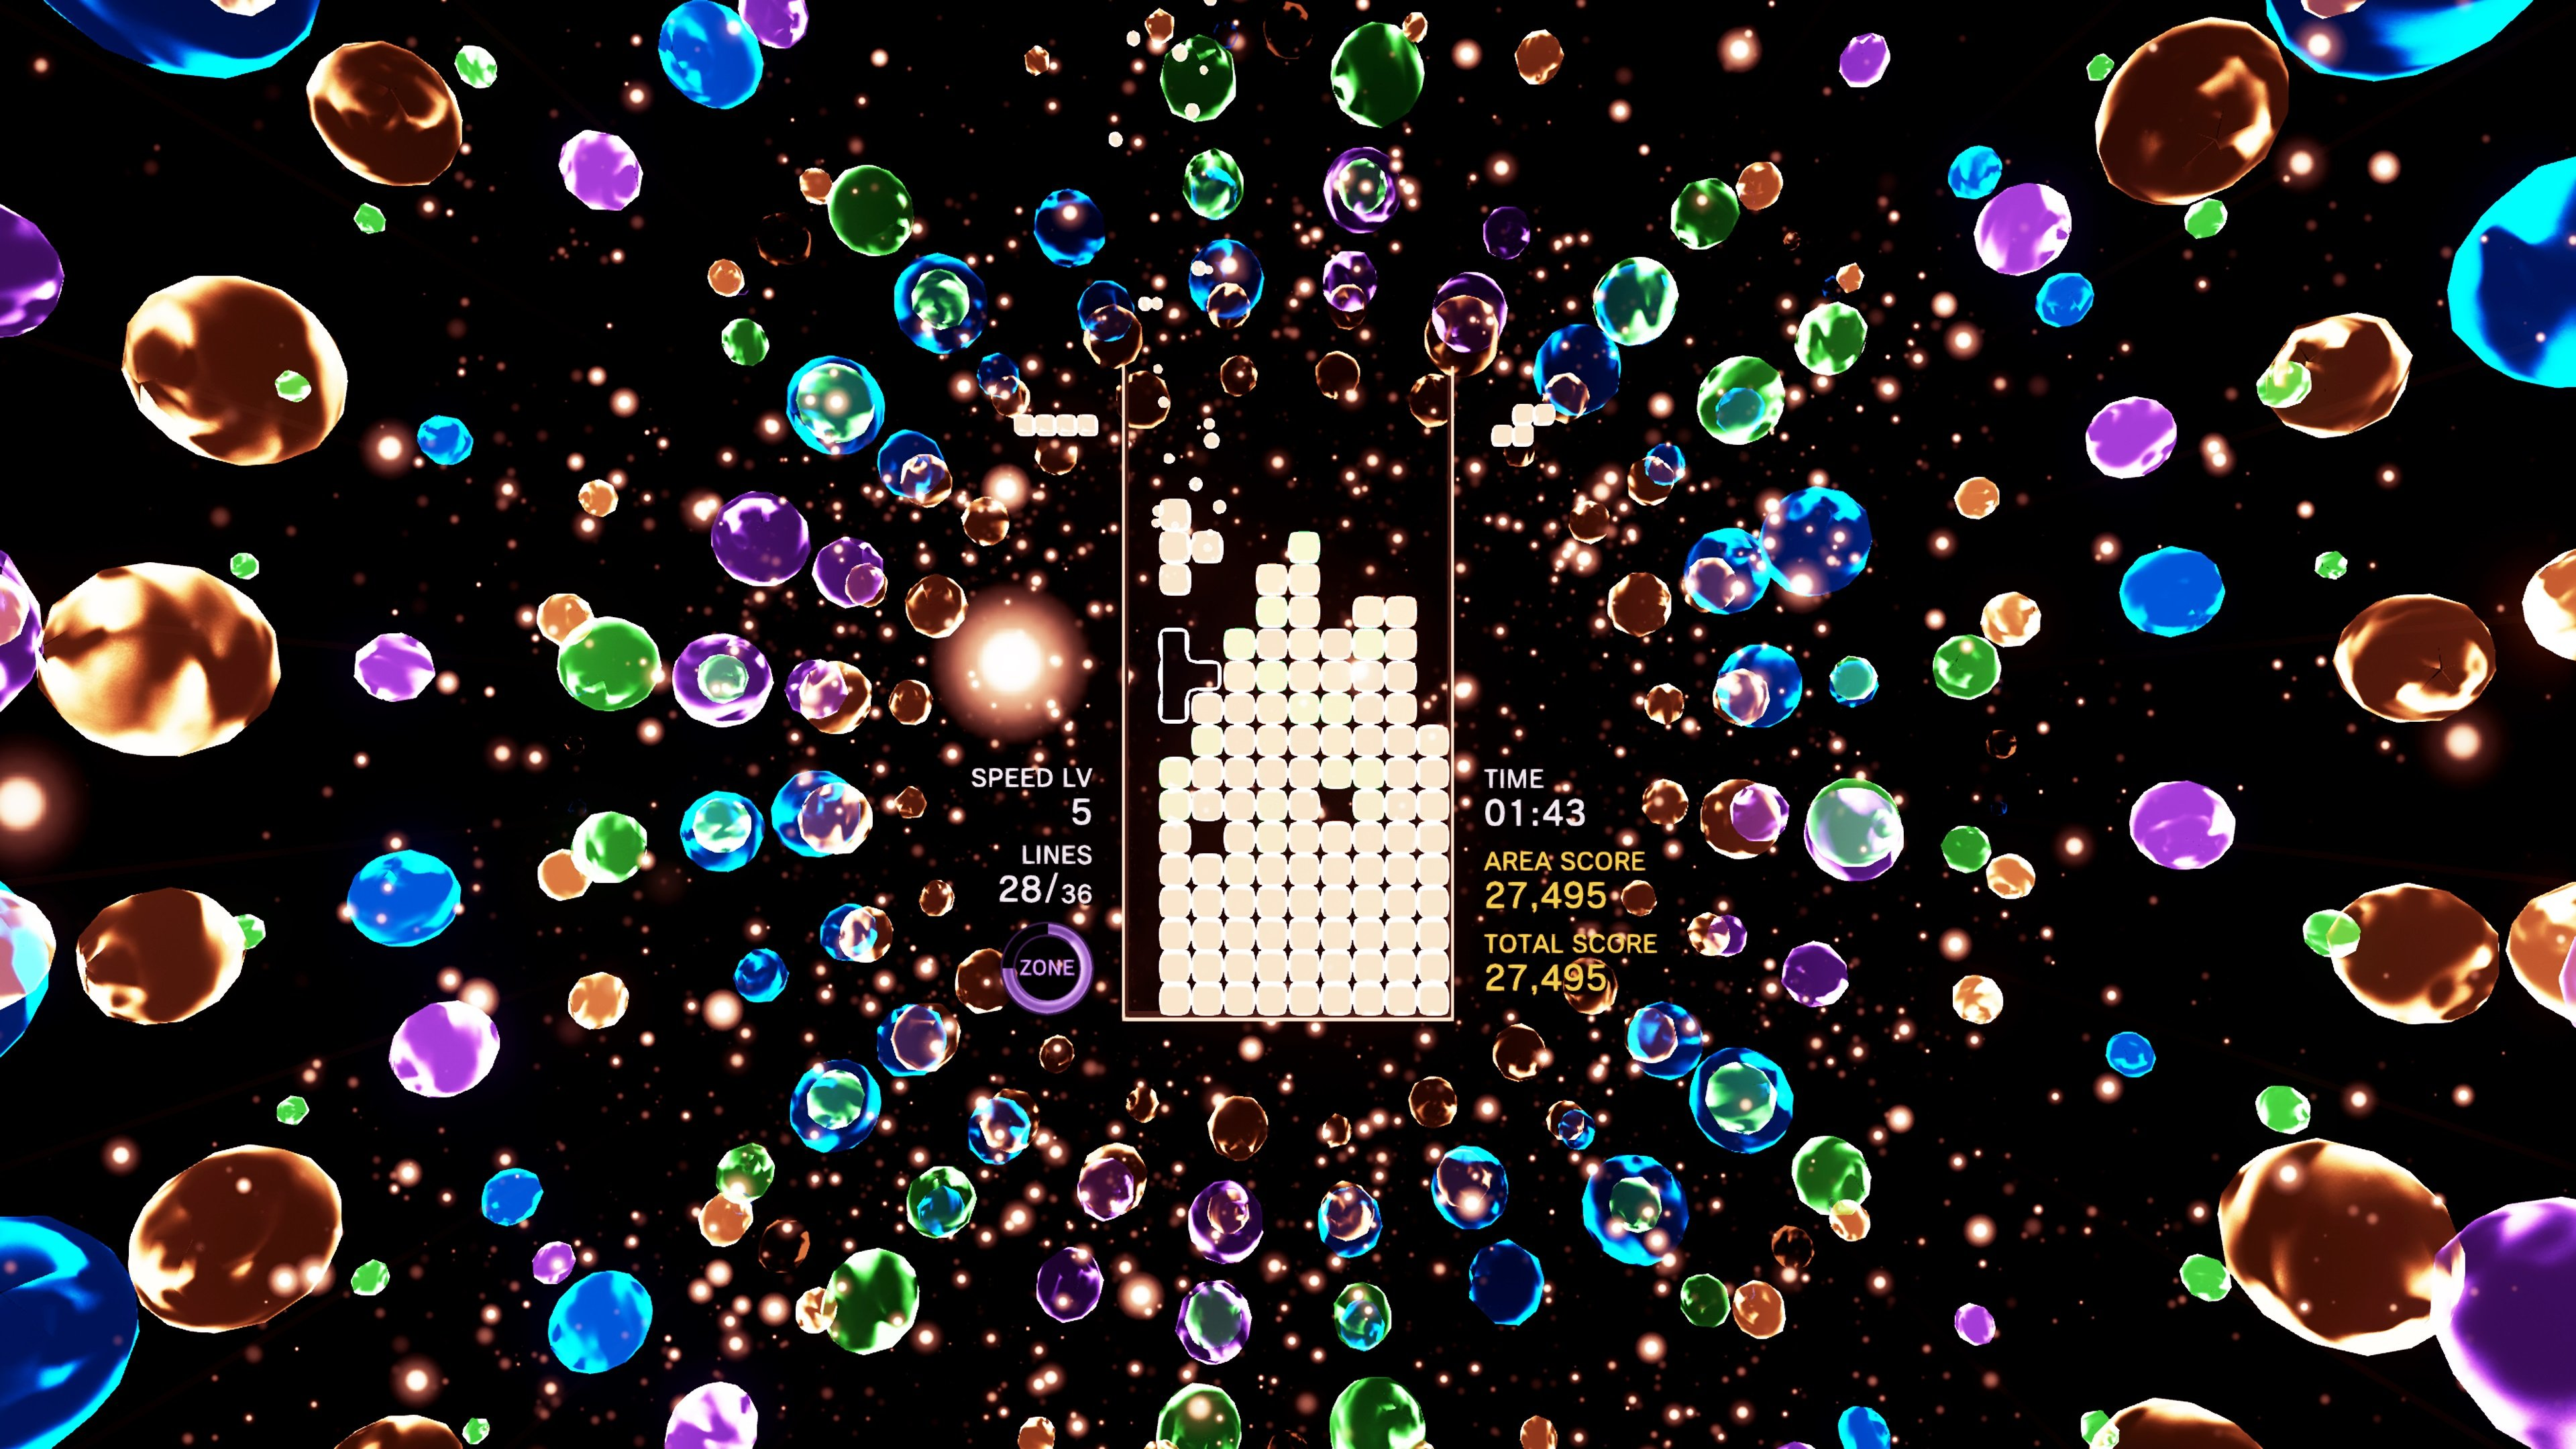 Tetris Effect has been discounted to $20 during the Game Days Sale